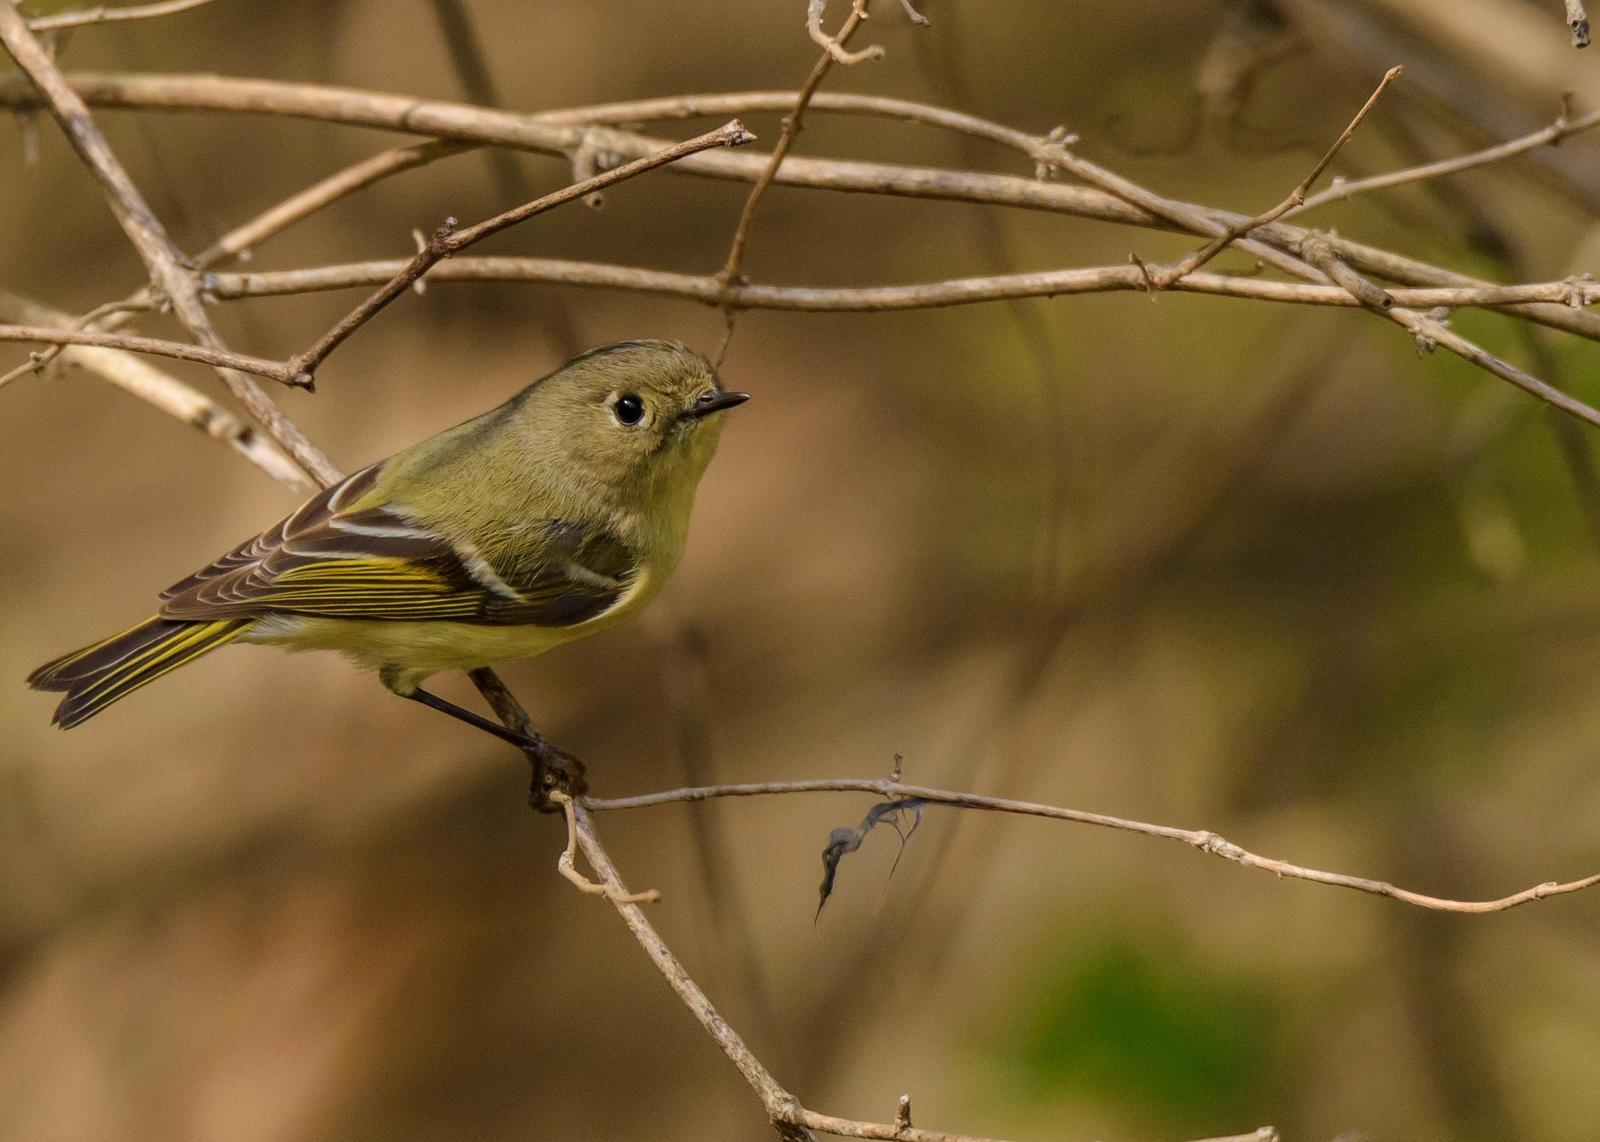 Ruby-crowned Kinglet Photo by Keshava Mysore